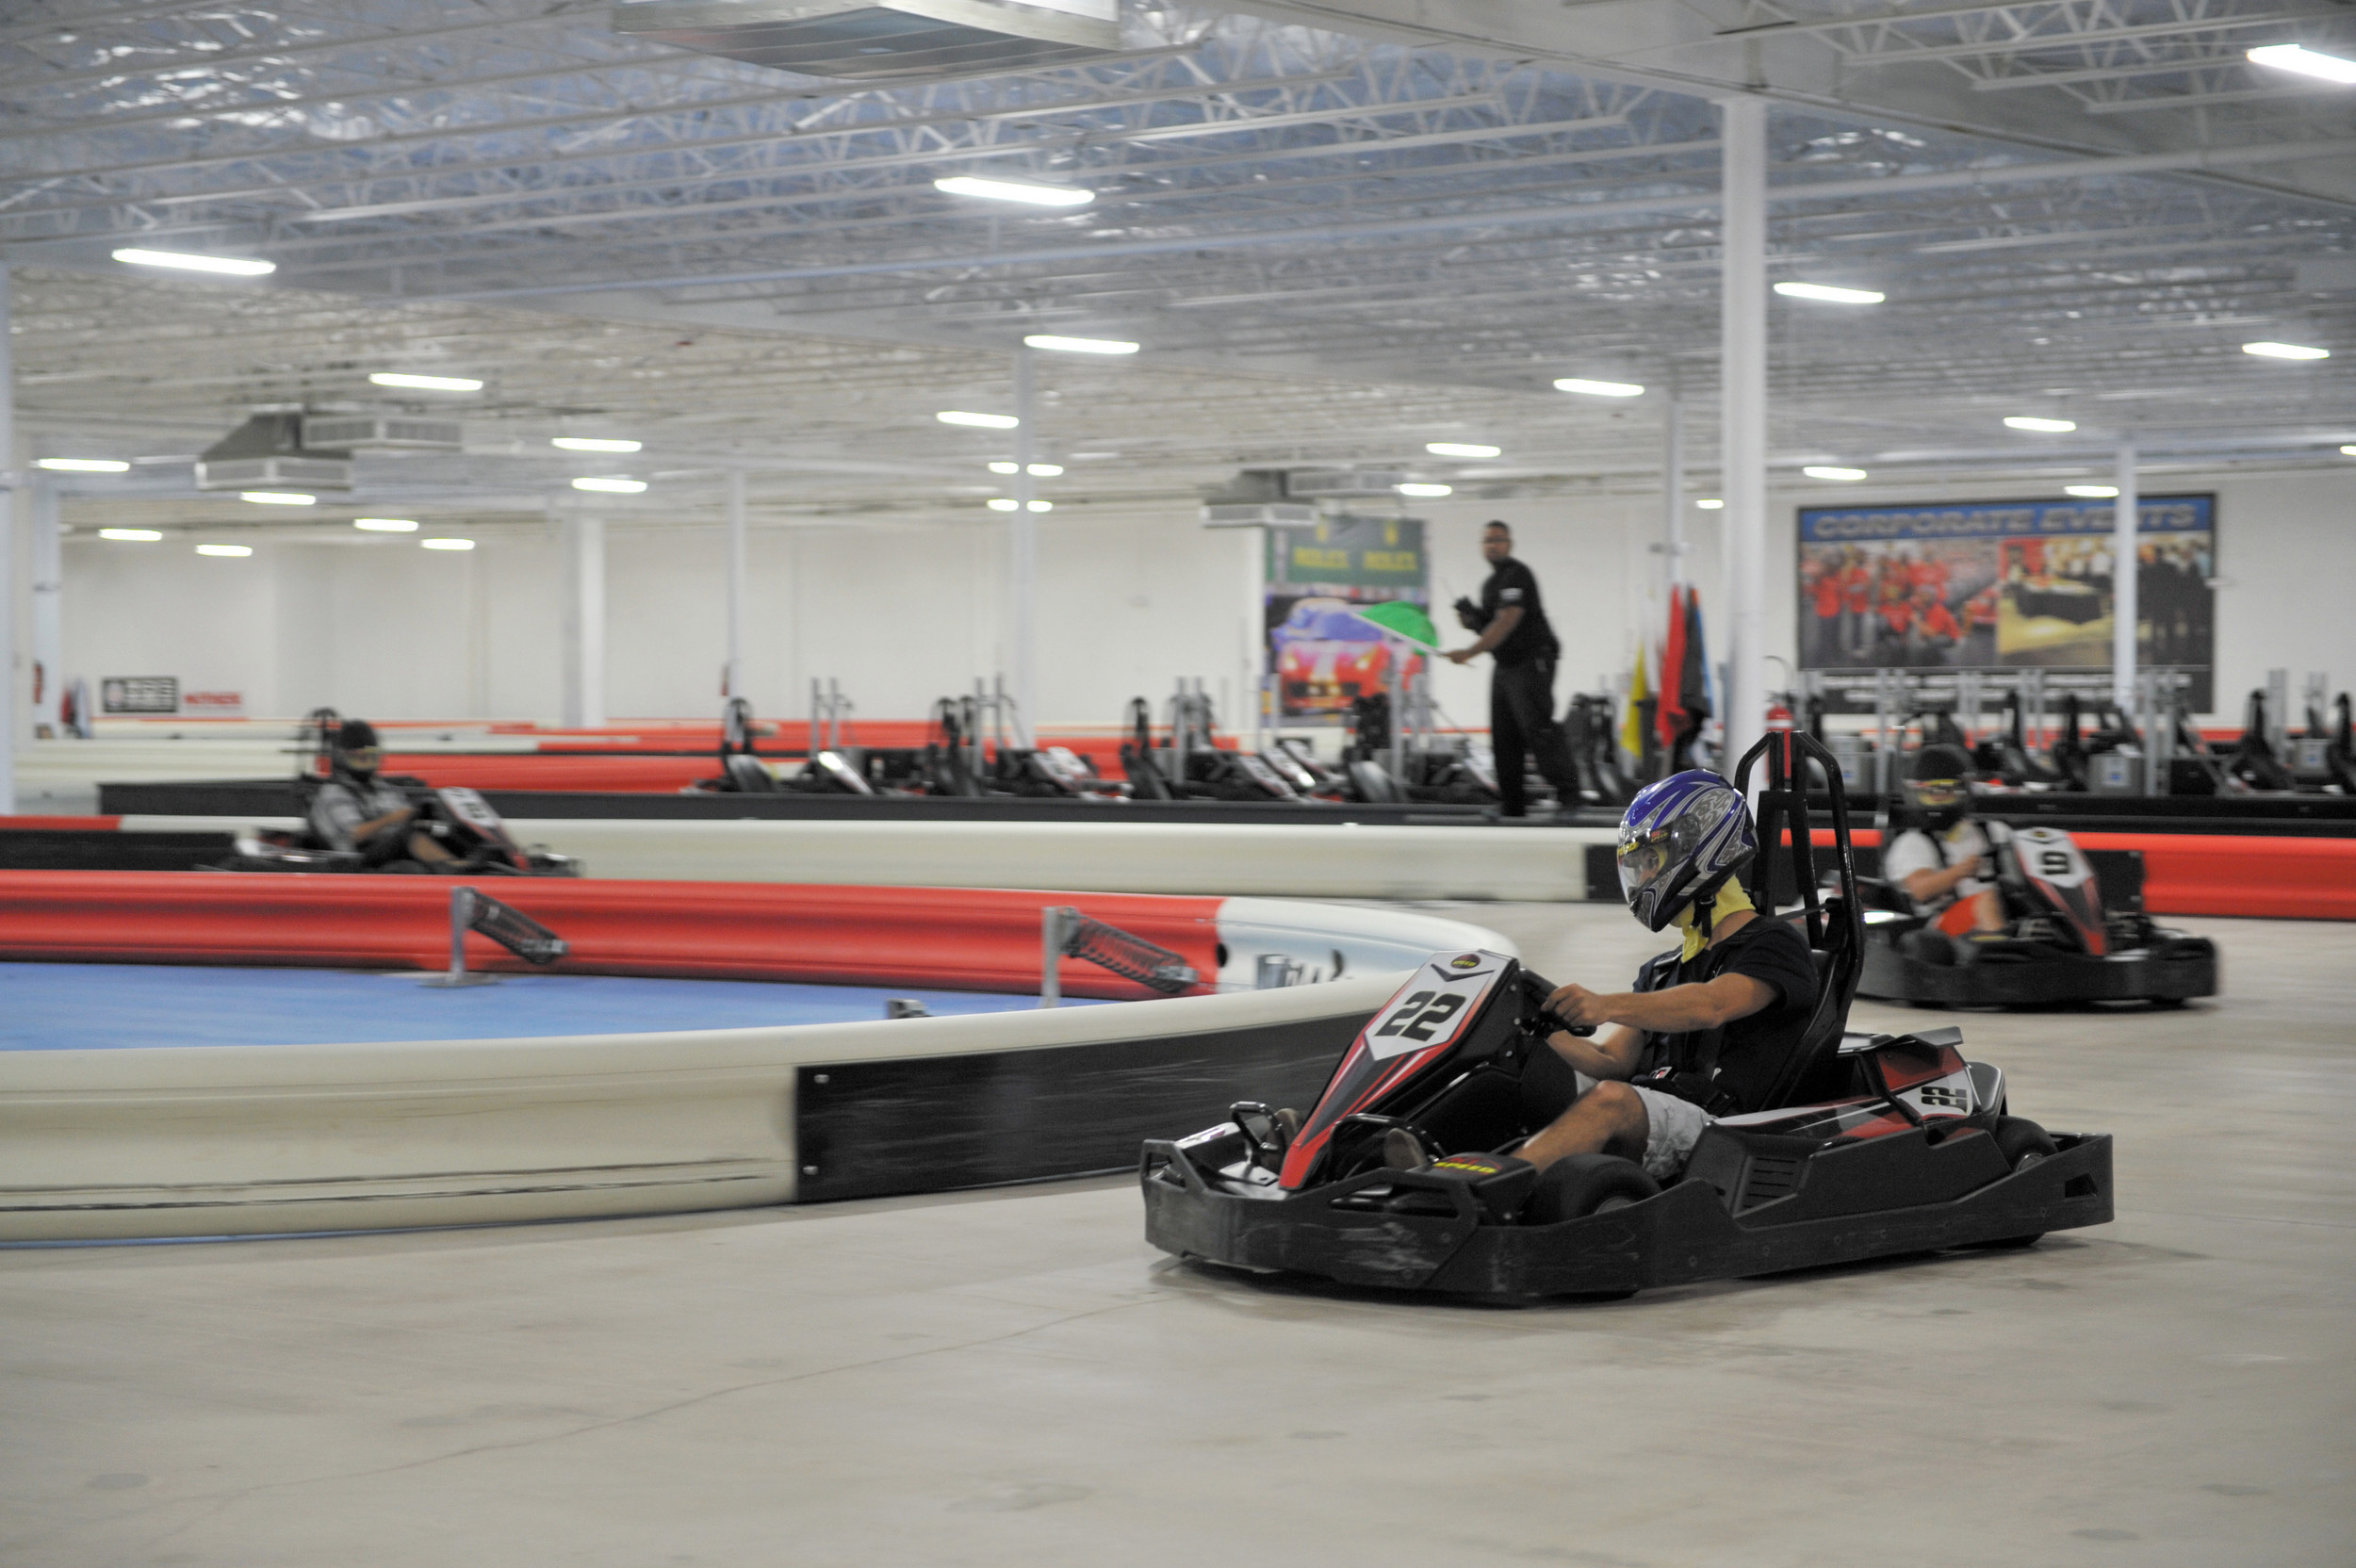 Go-kart racing is a craze that's catching on in the United States, and the south-metro area is along for the ride. These racers are at a K1 Speed, slated to open soon in Highlands Ranch.